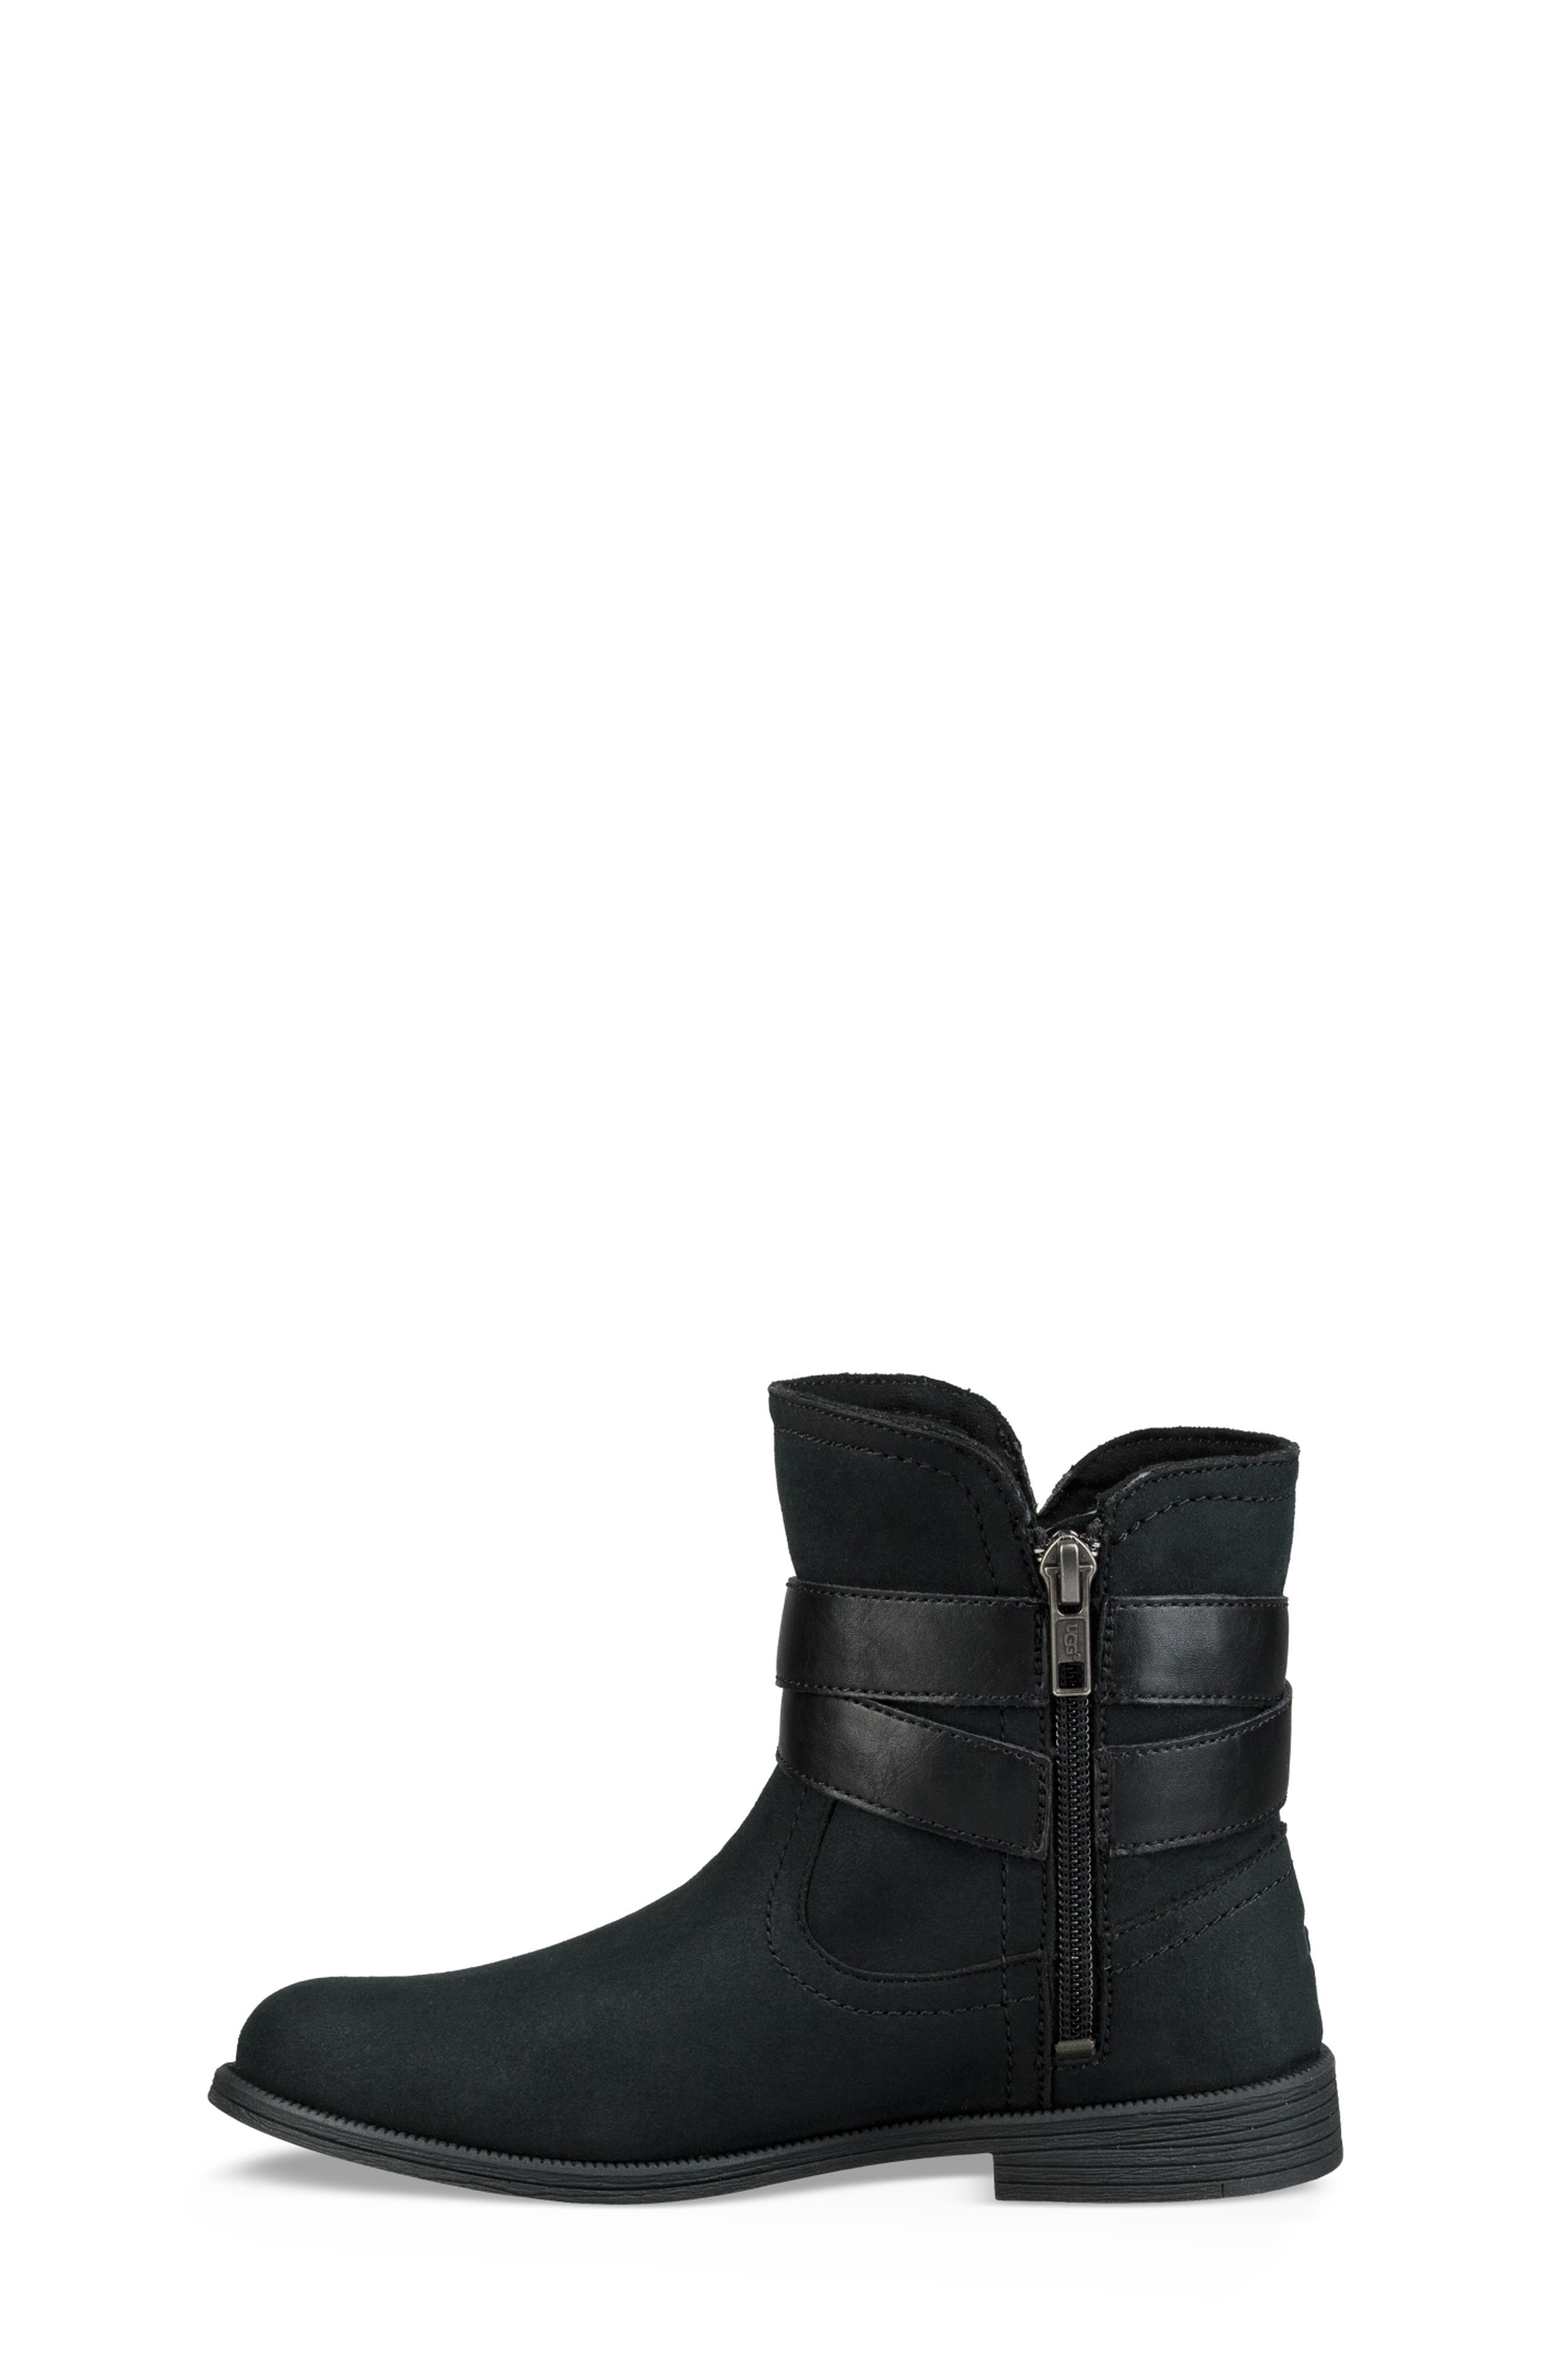 UGG<SUP>®</SUP>, UGG Joanie Bow Boot, Alternate thumbnail 6, color, BLACK